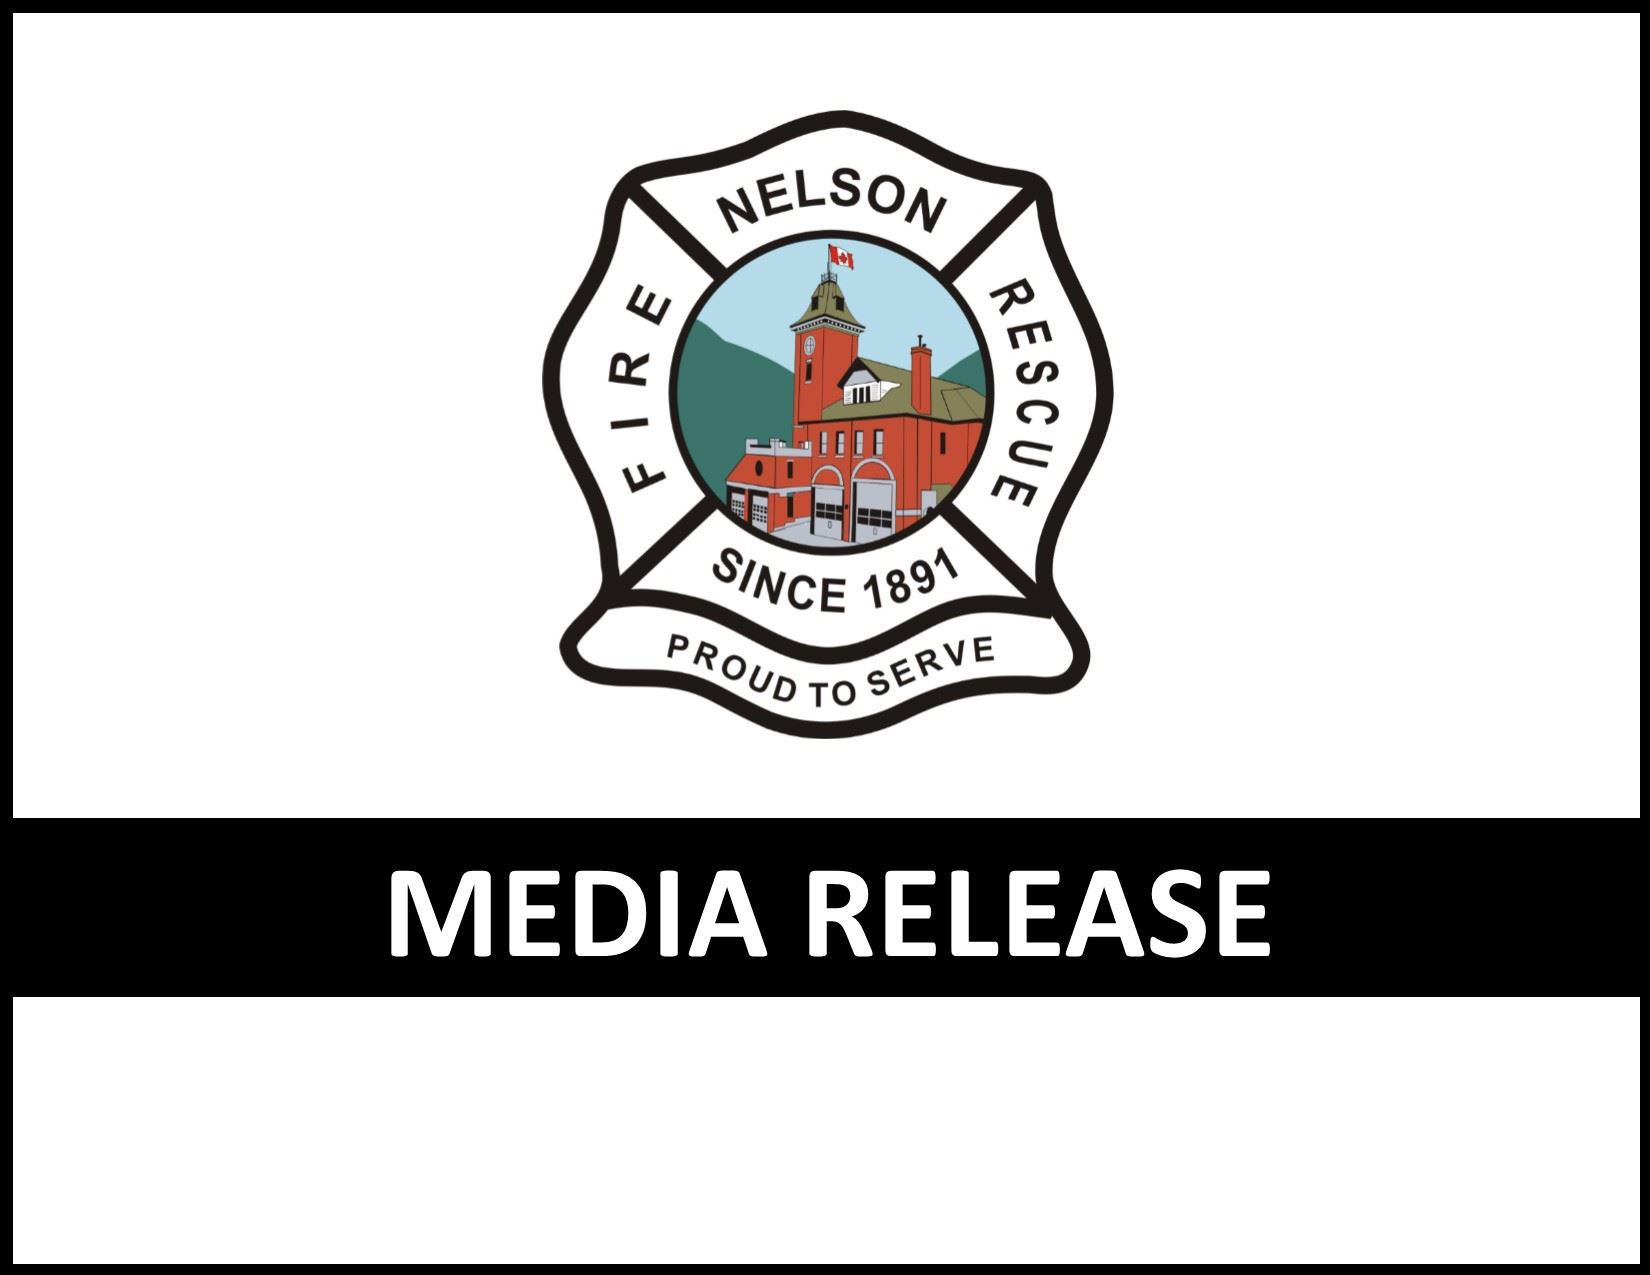 Media Release Fire Cover